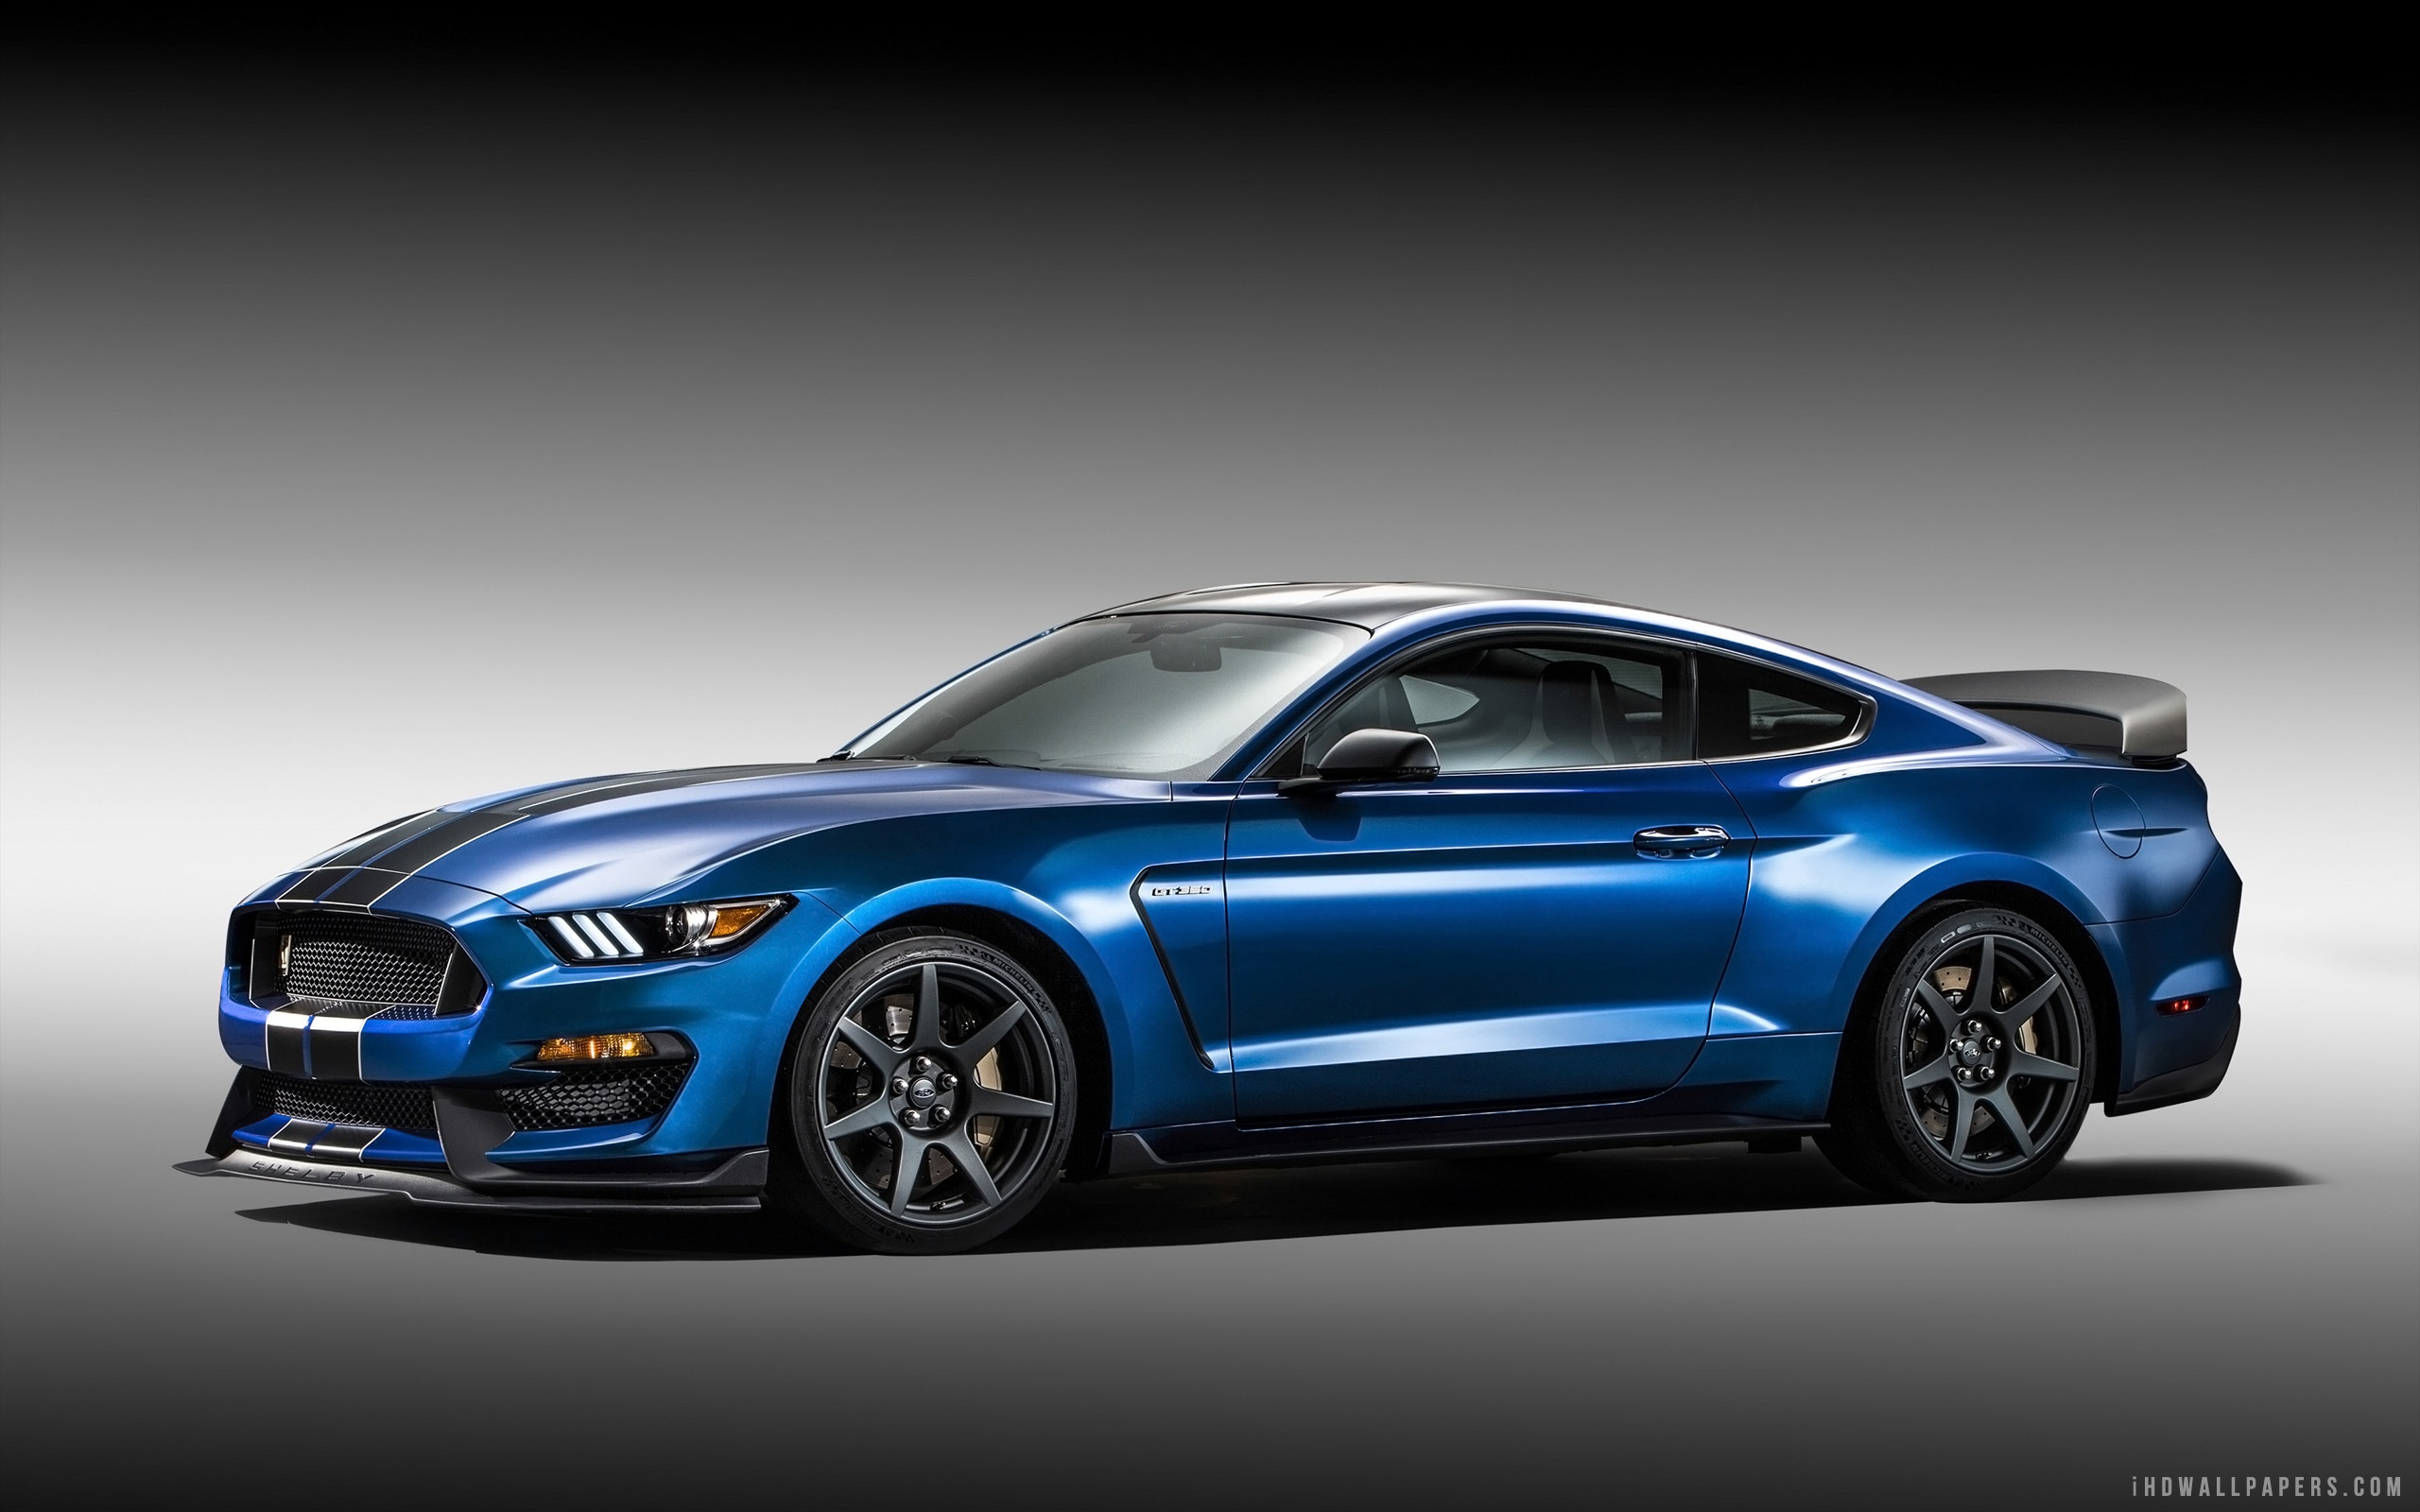 2016 Ford Mustang Shelby GT350 HD Wallpaper   iHD Wallpapers 2560x1600